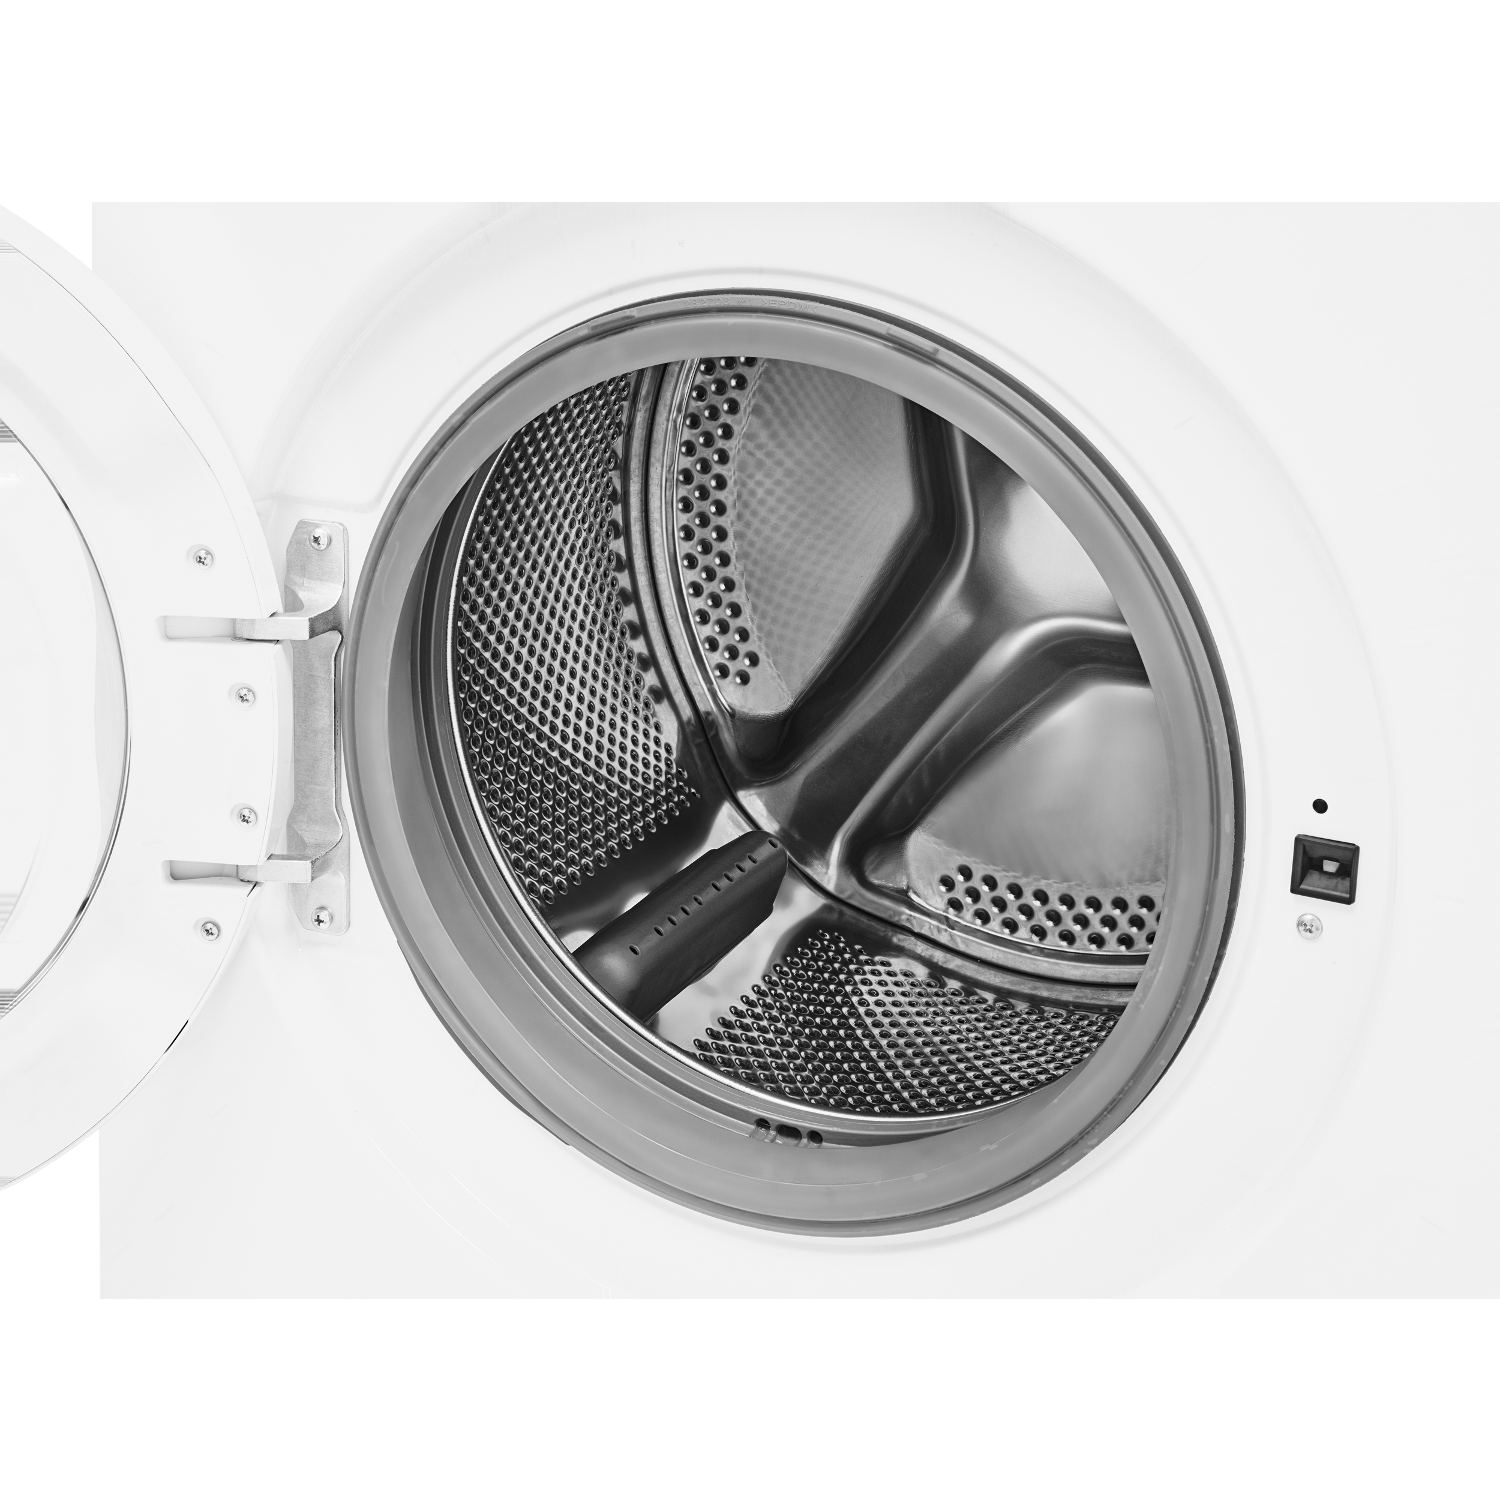 Beko 8kg 1200 Spin Washing Machine - White - A+++ Rated - 1